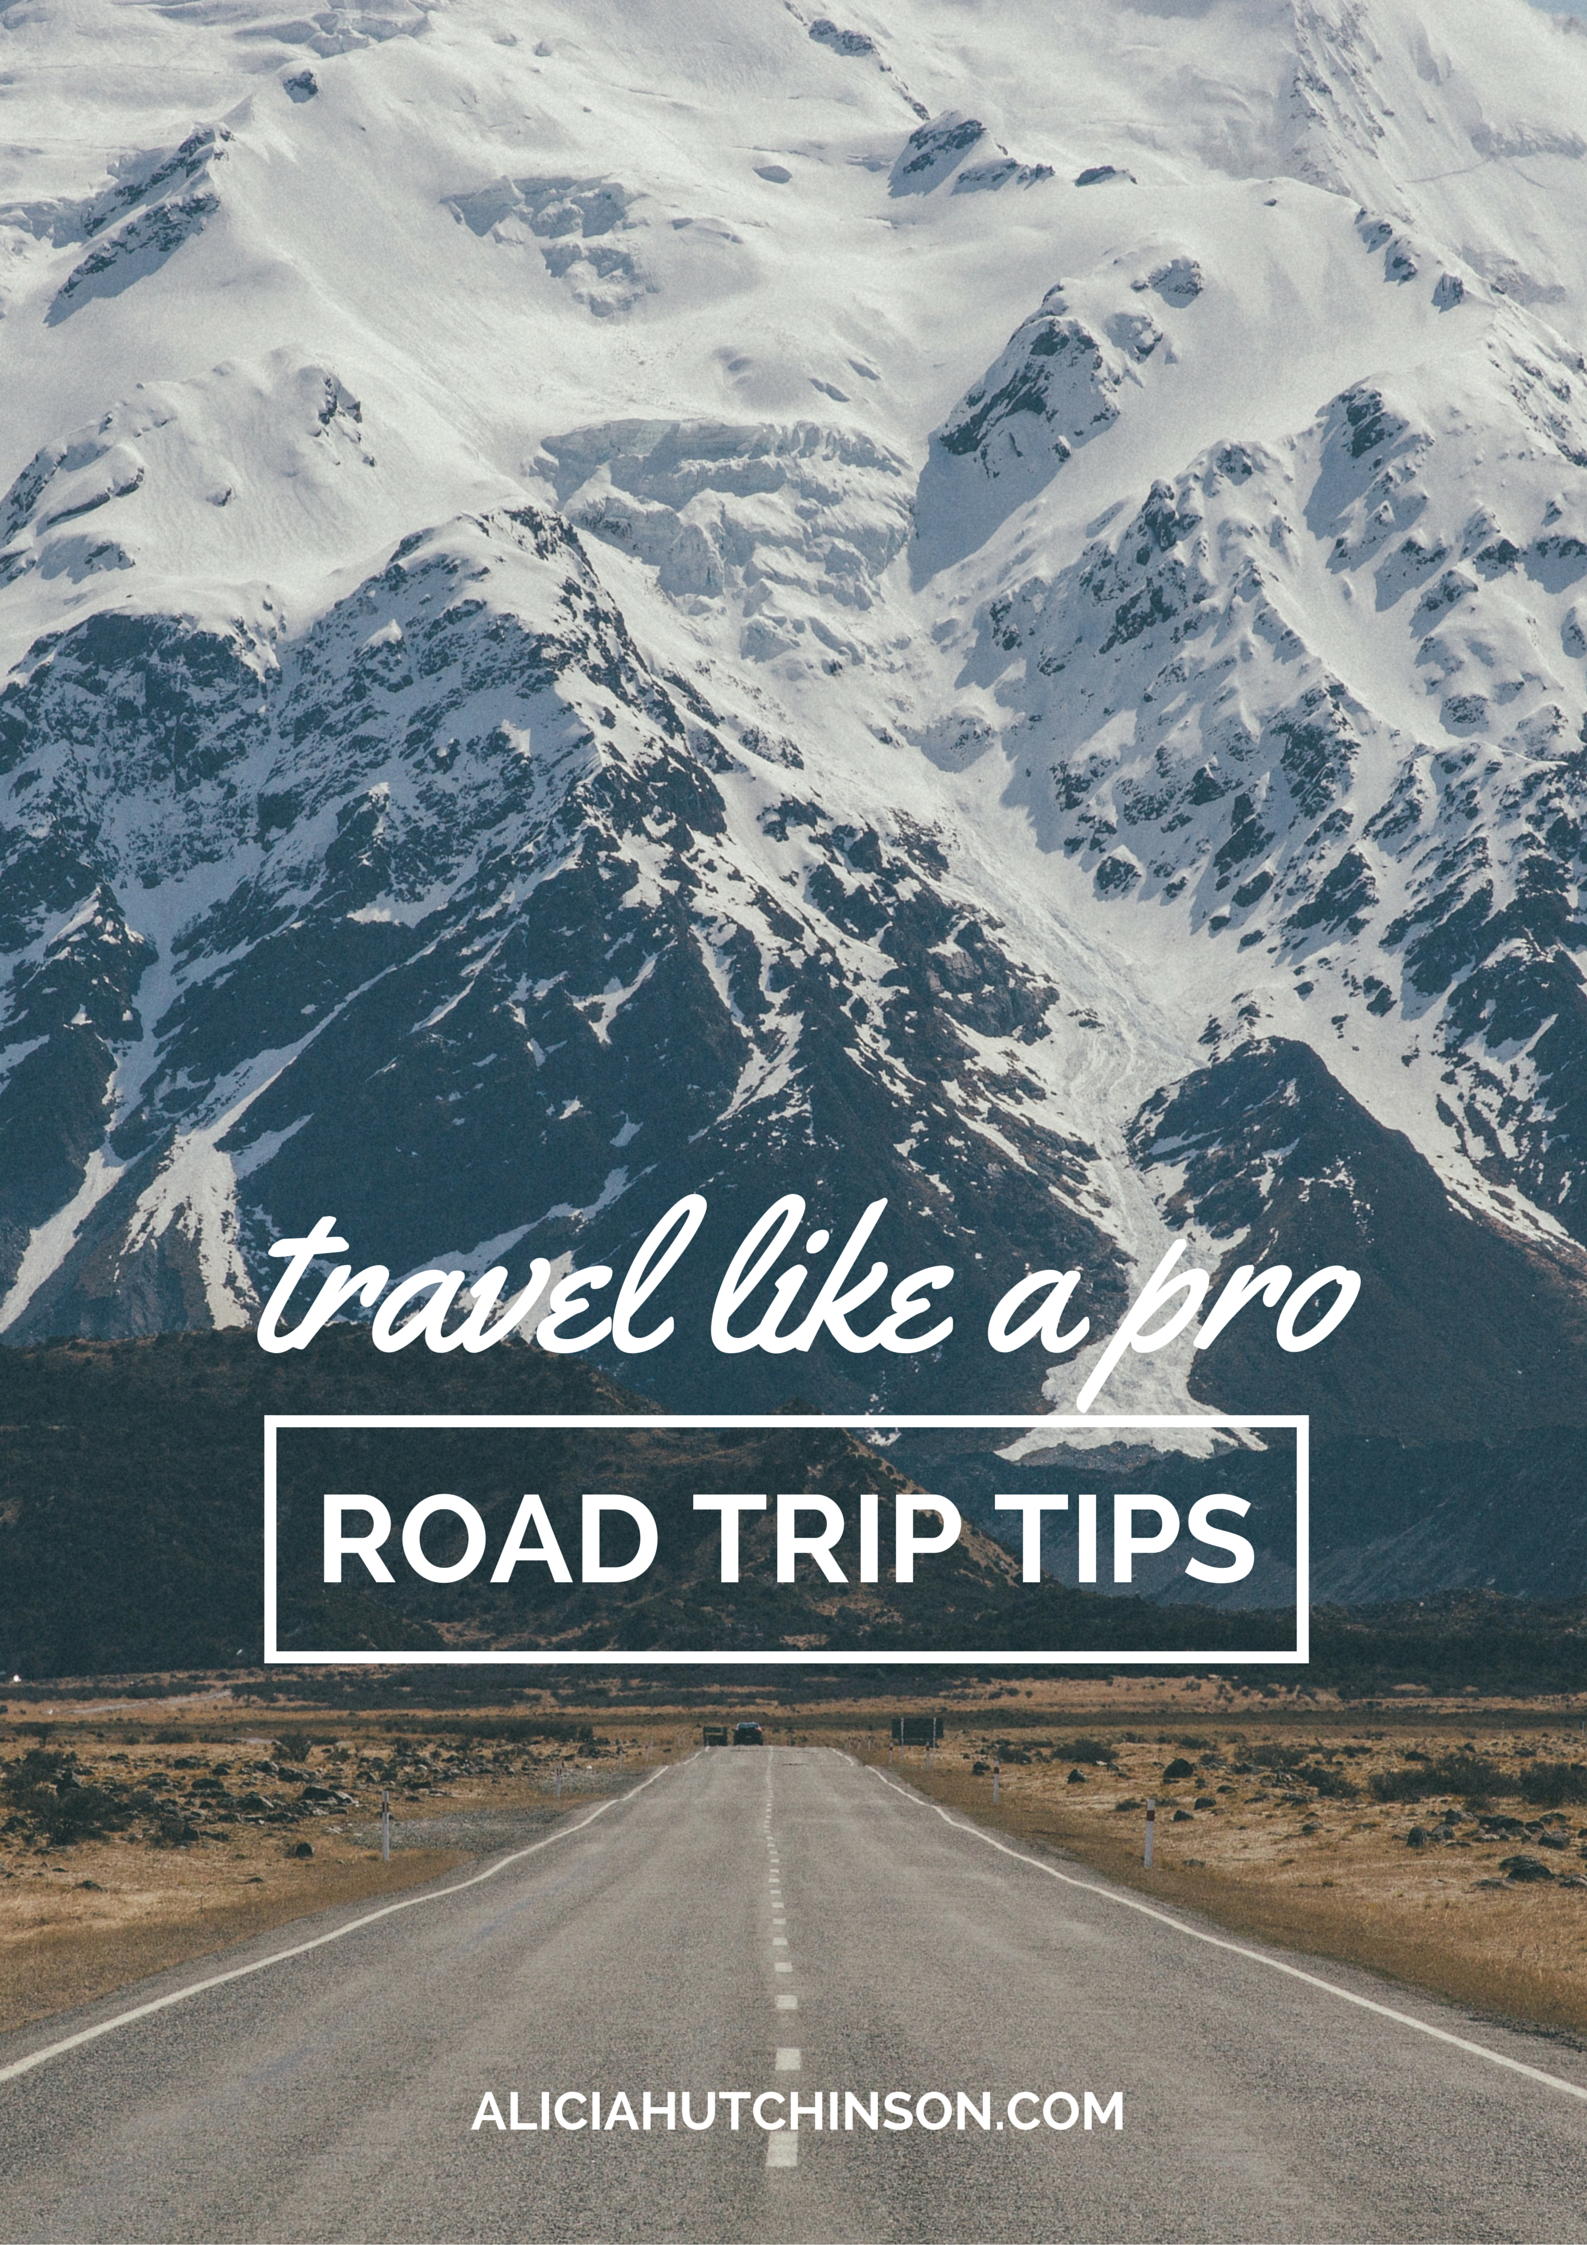 Going on road trips with kids can be tricky. Here are 14 of my best road trip tips to get you on the road like a pro!